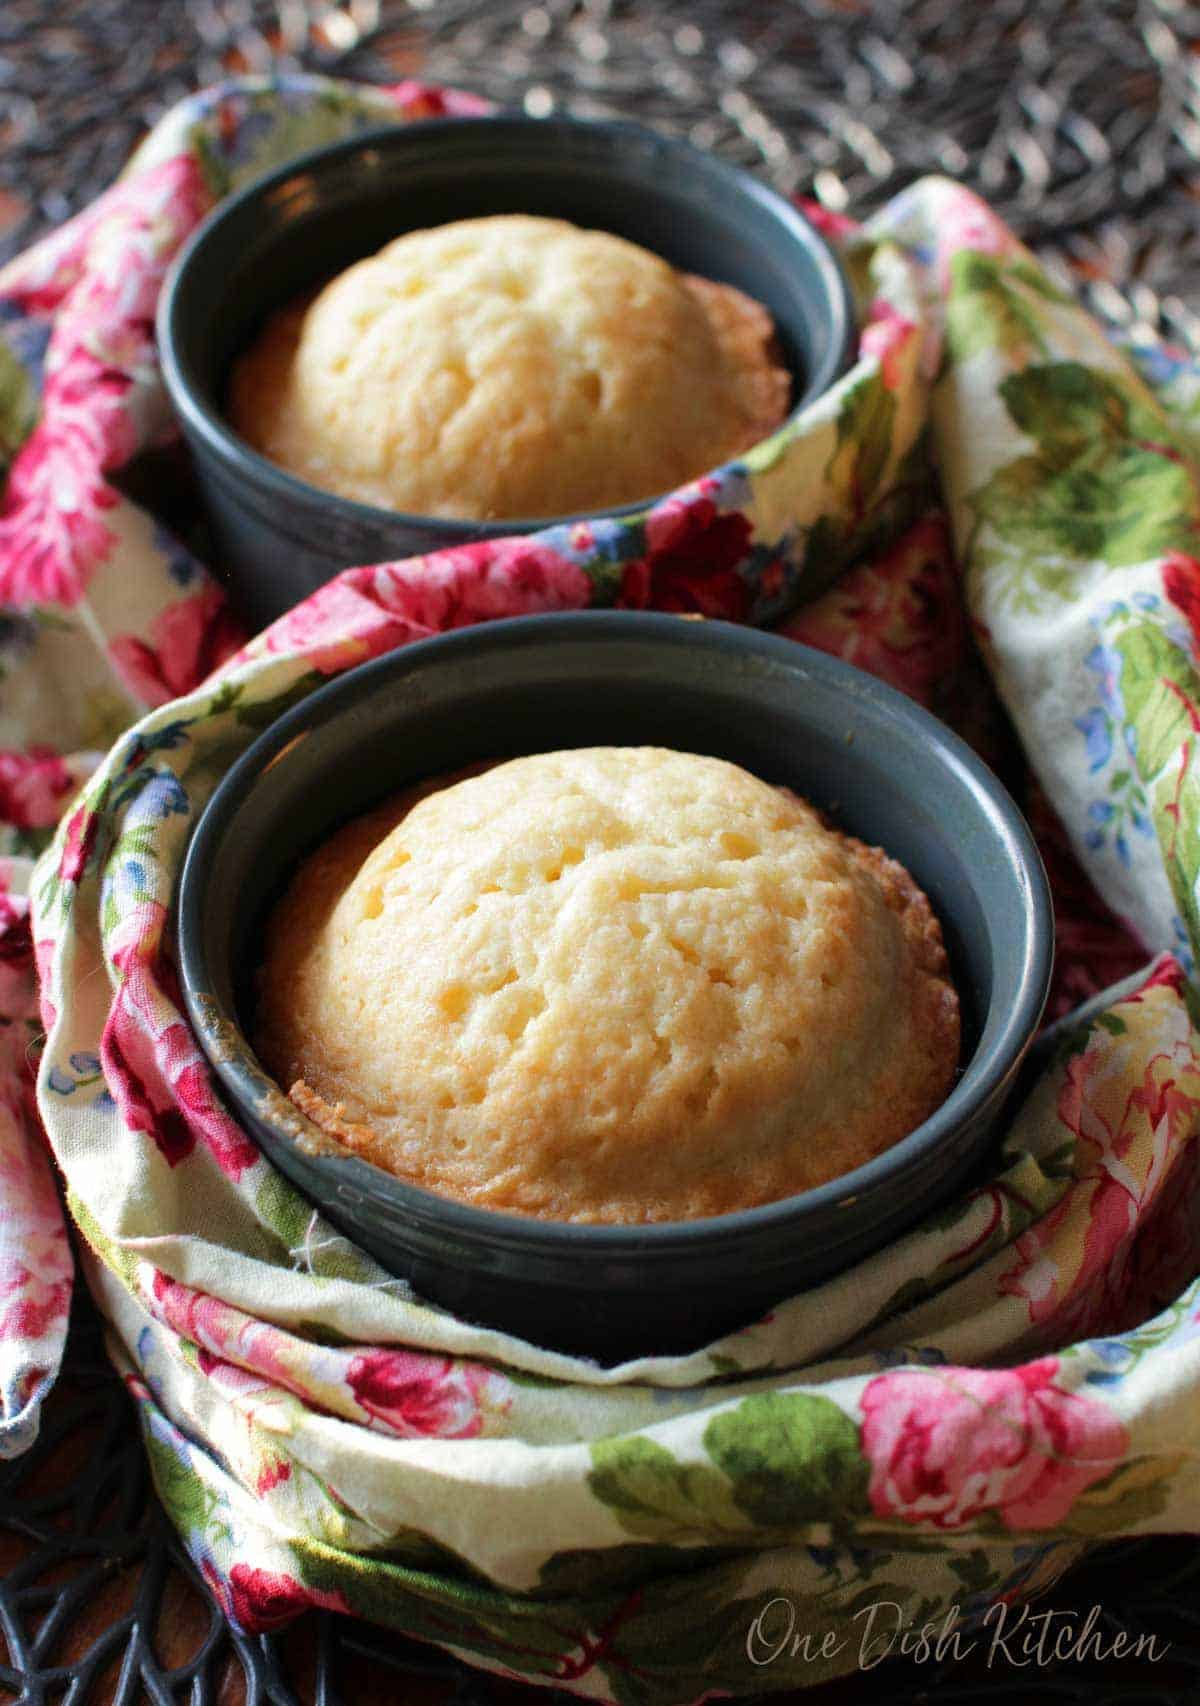 Two green ramekins filled with pound cake on a floral napkin.